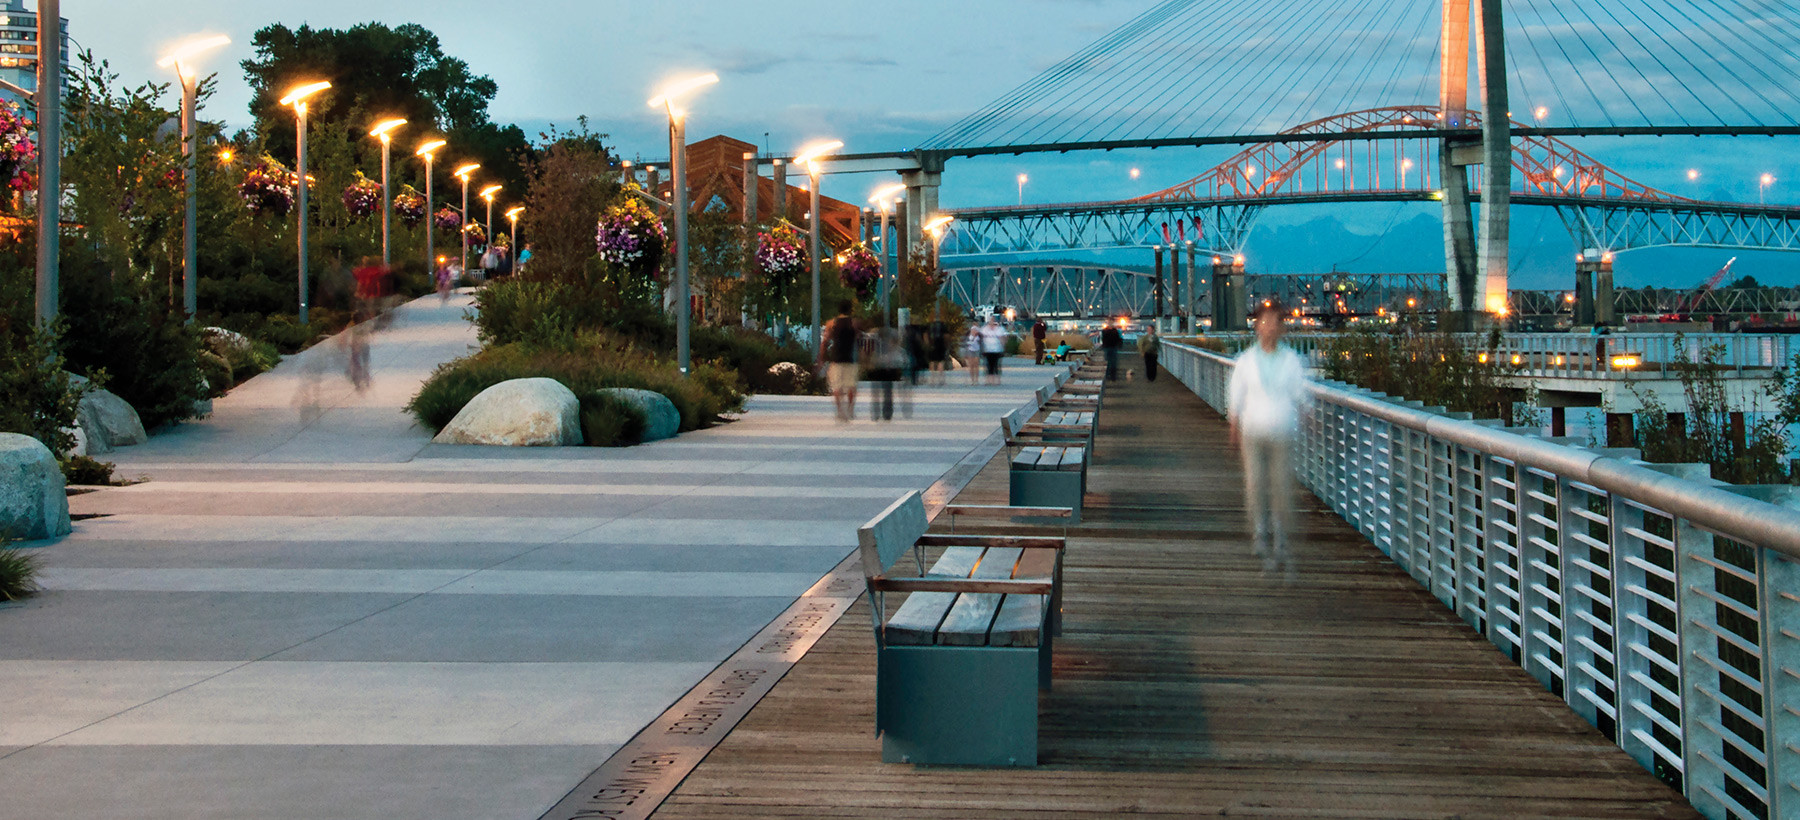 2014 canadian urban design award winners archdaily for British landscape architects